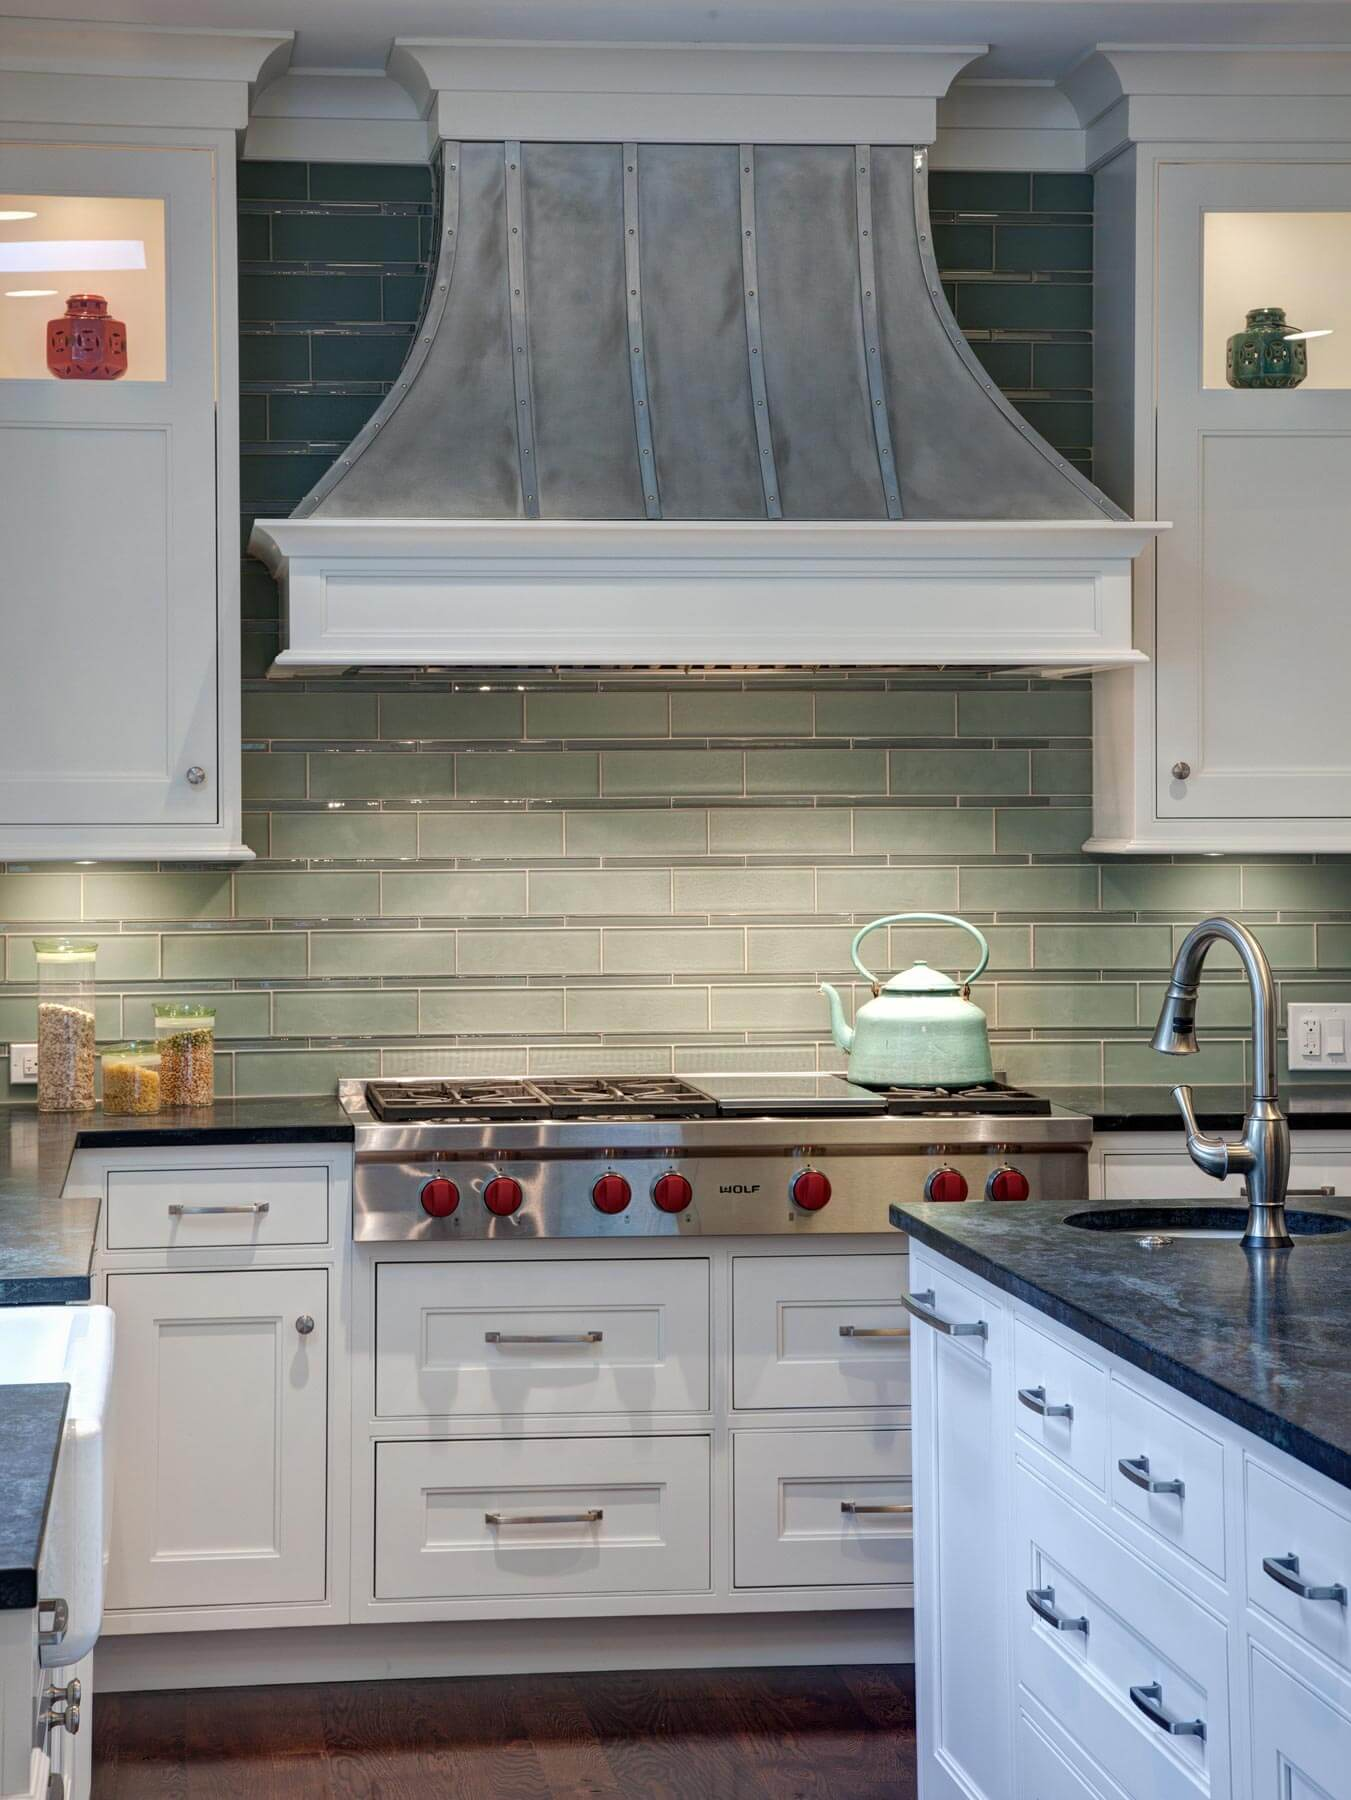 The extra large range is defined by the soft green tone of the tile backsplash, beneath the custom crafted metal hood. Island features a secondary sink, at right.